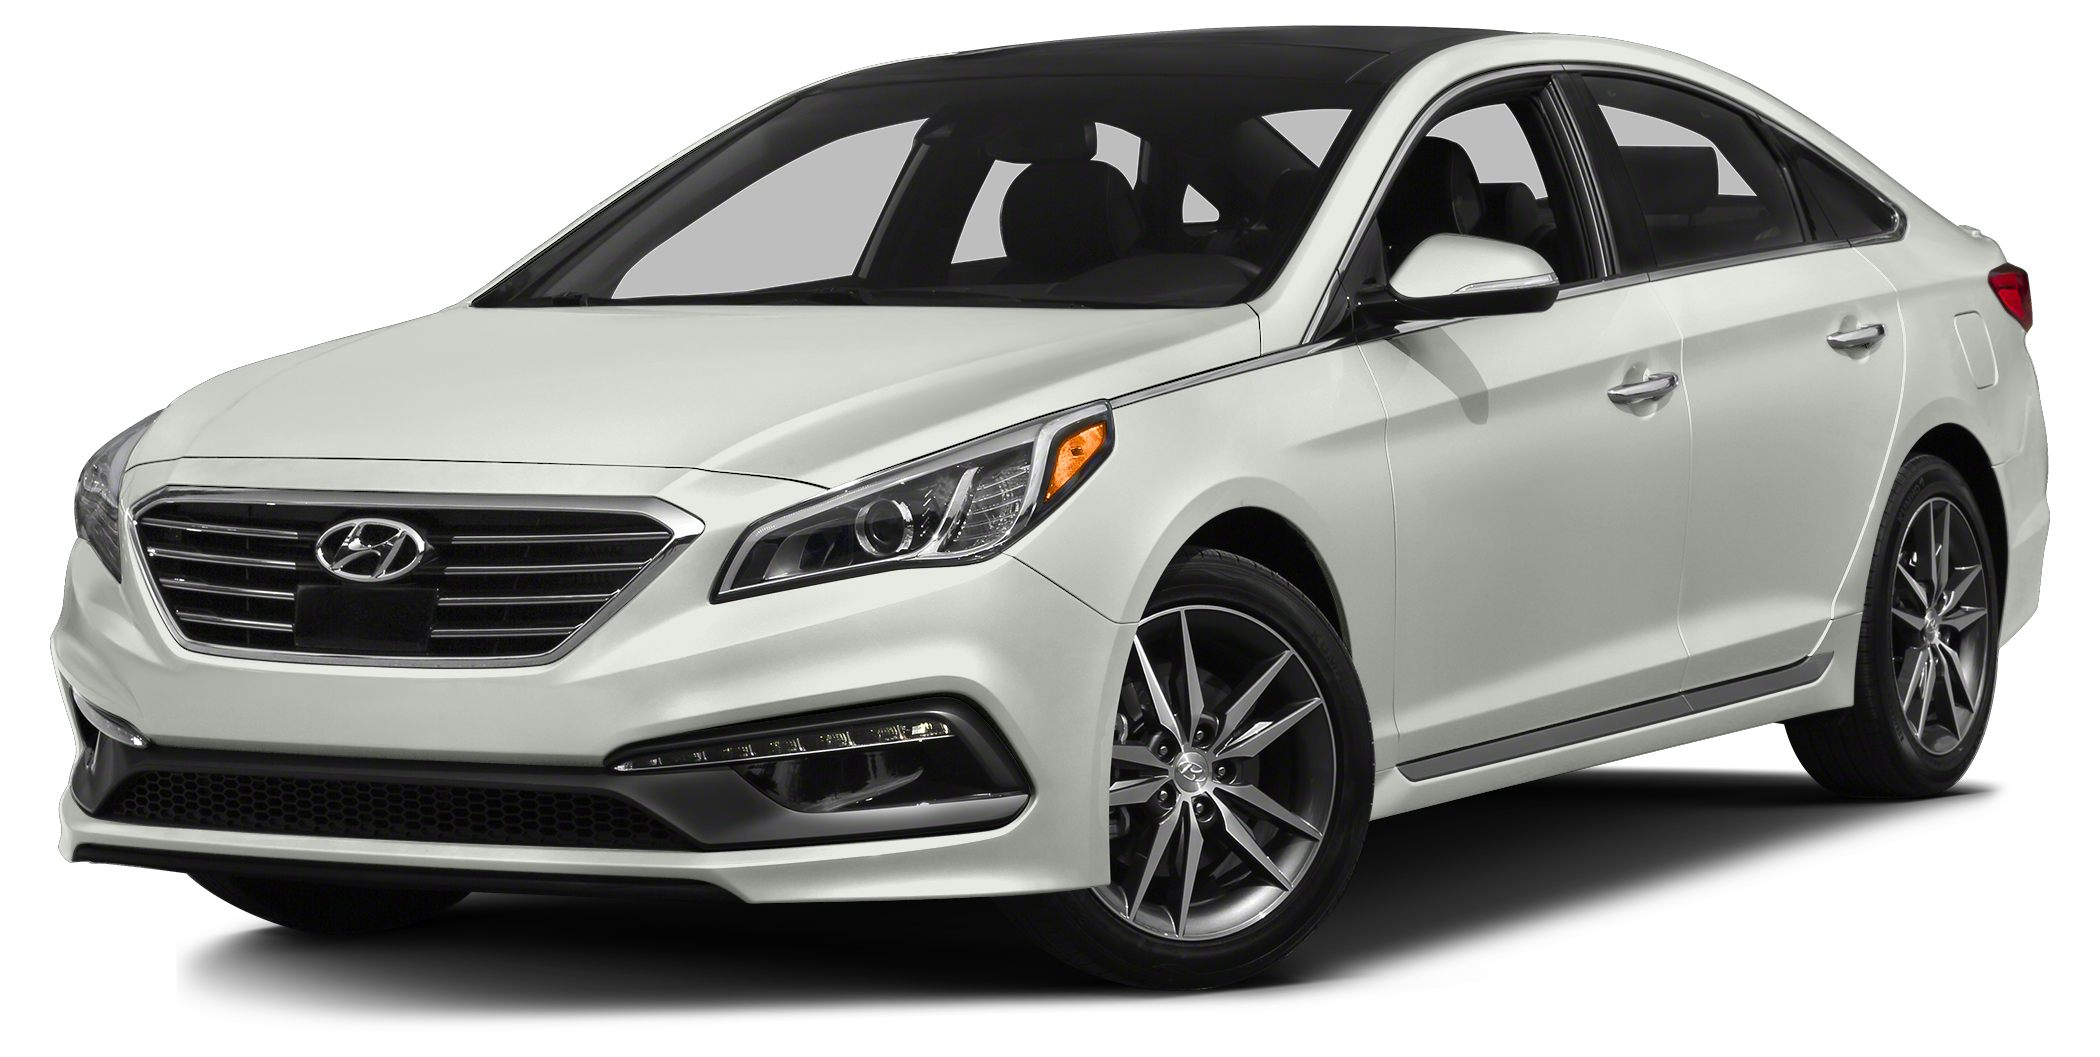 2015 Hyundai Sonata SE Price includes 1500 - Retail Bonus Cash Exp 0731 Miles 10Color Nou